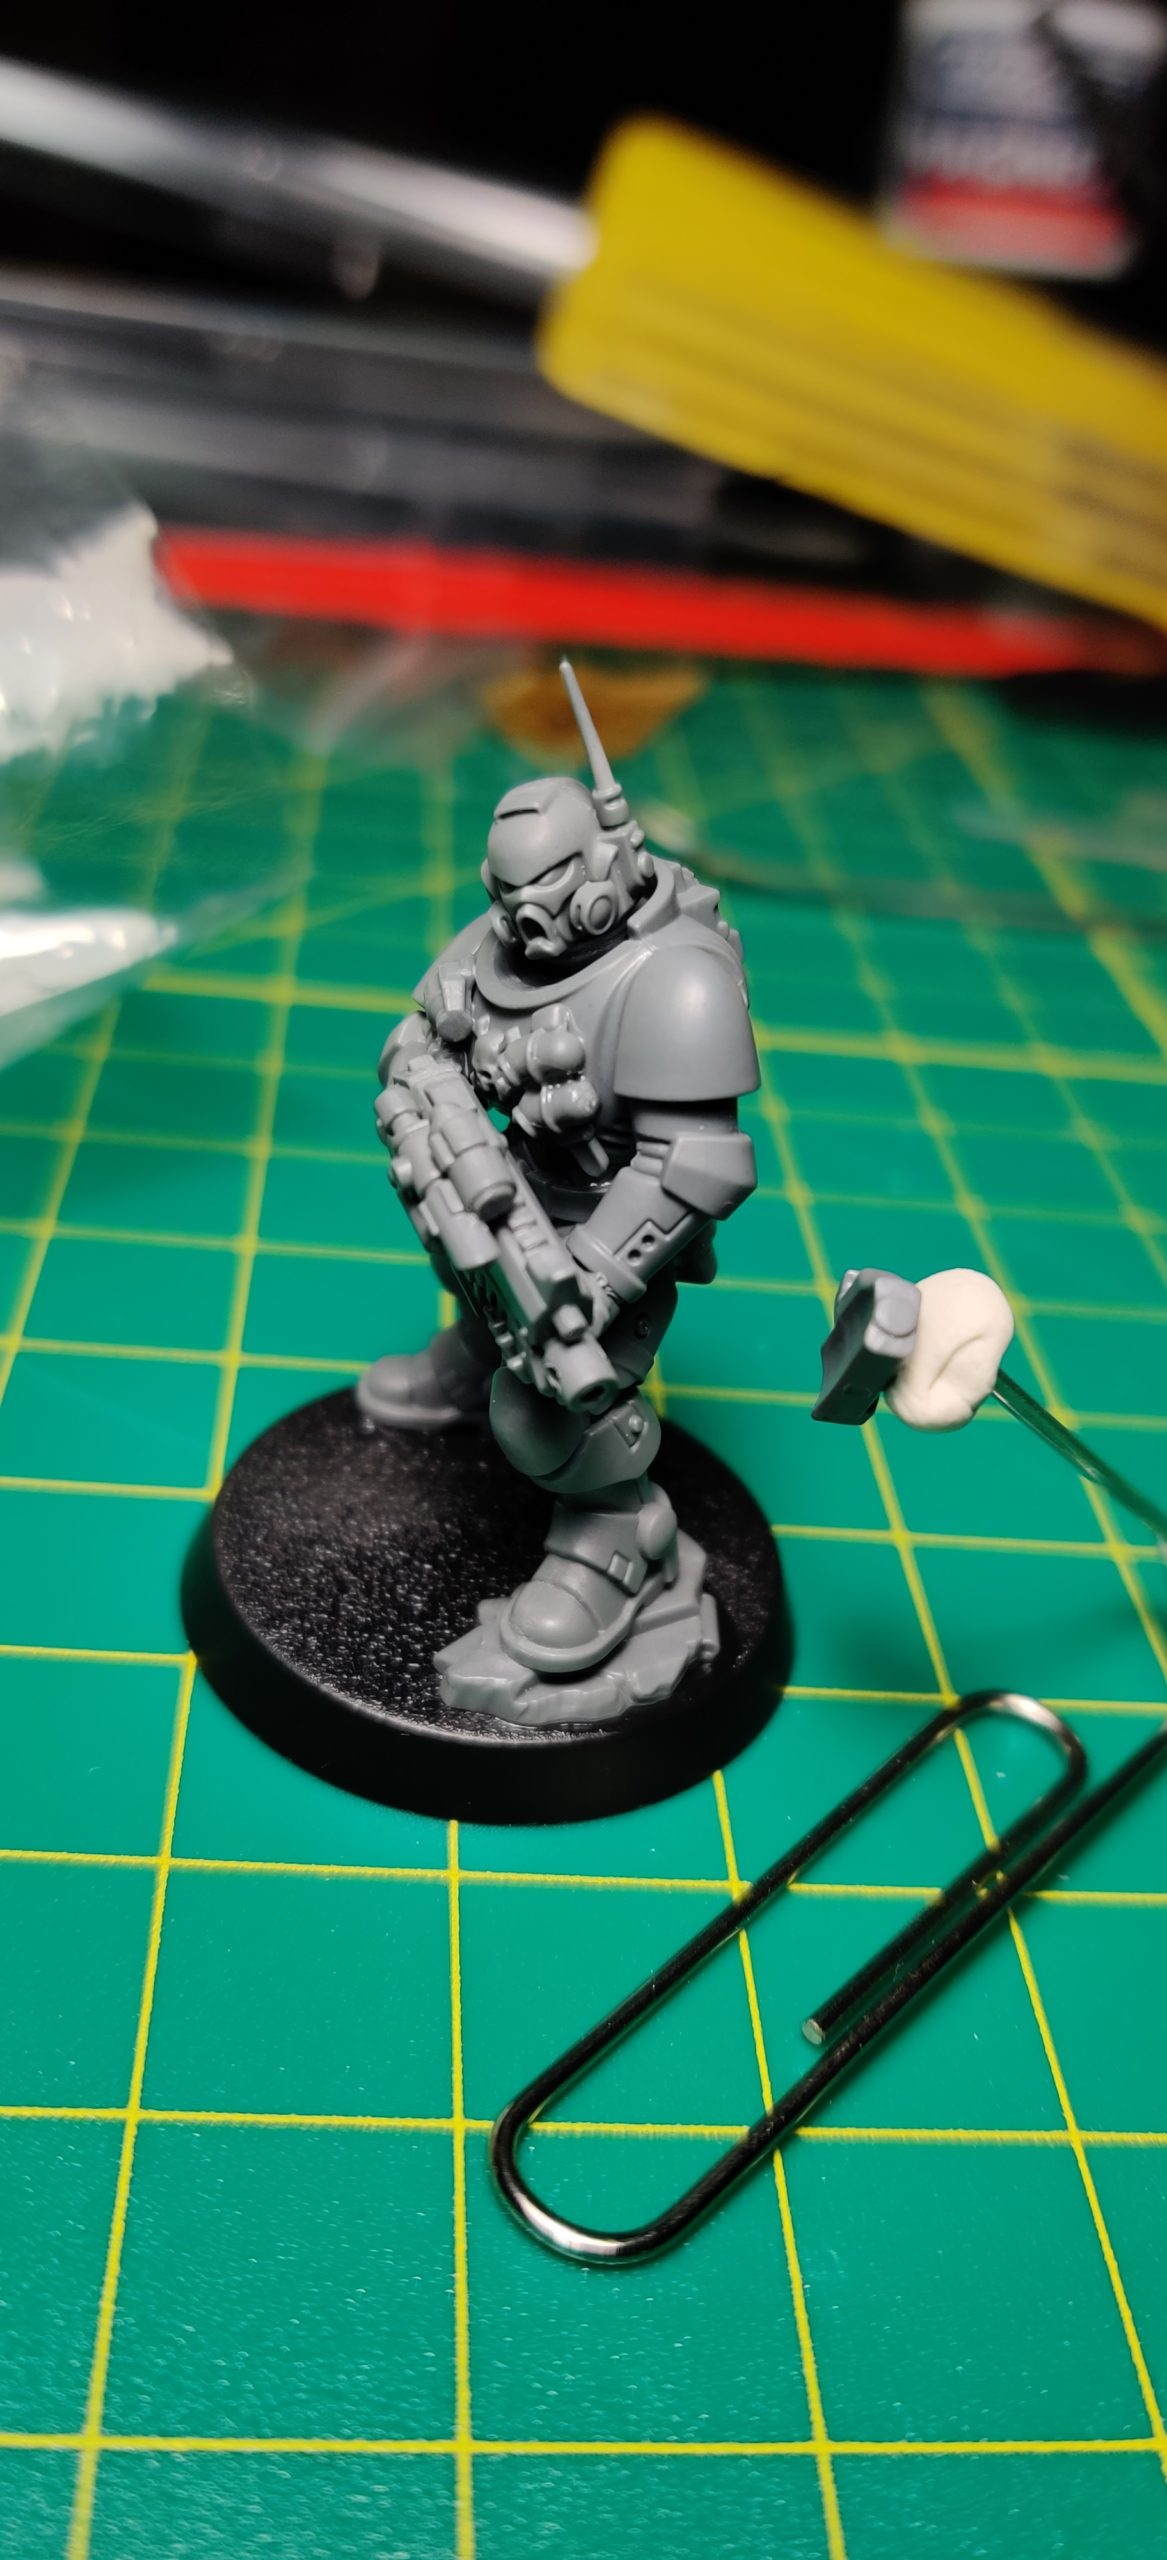 Primaris Space Marine Infiltrator/Incursor with Sticky Tac and paperclip placement tool.